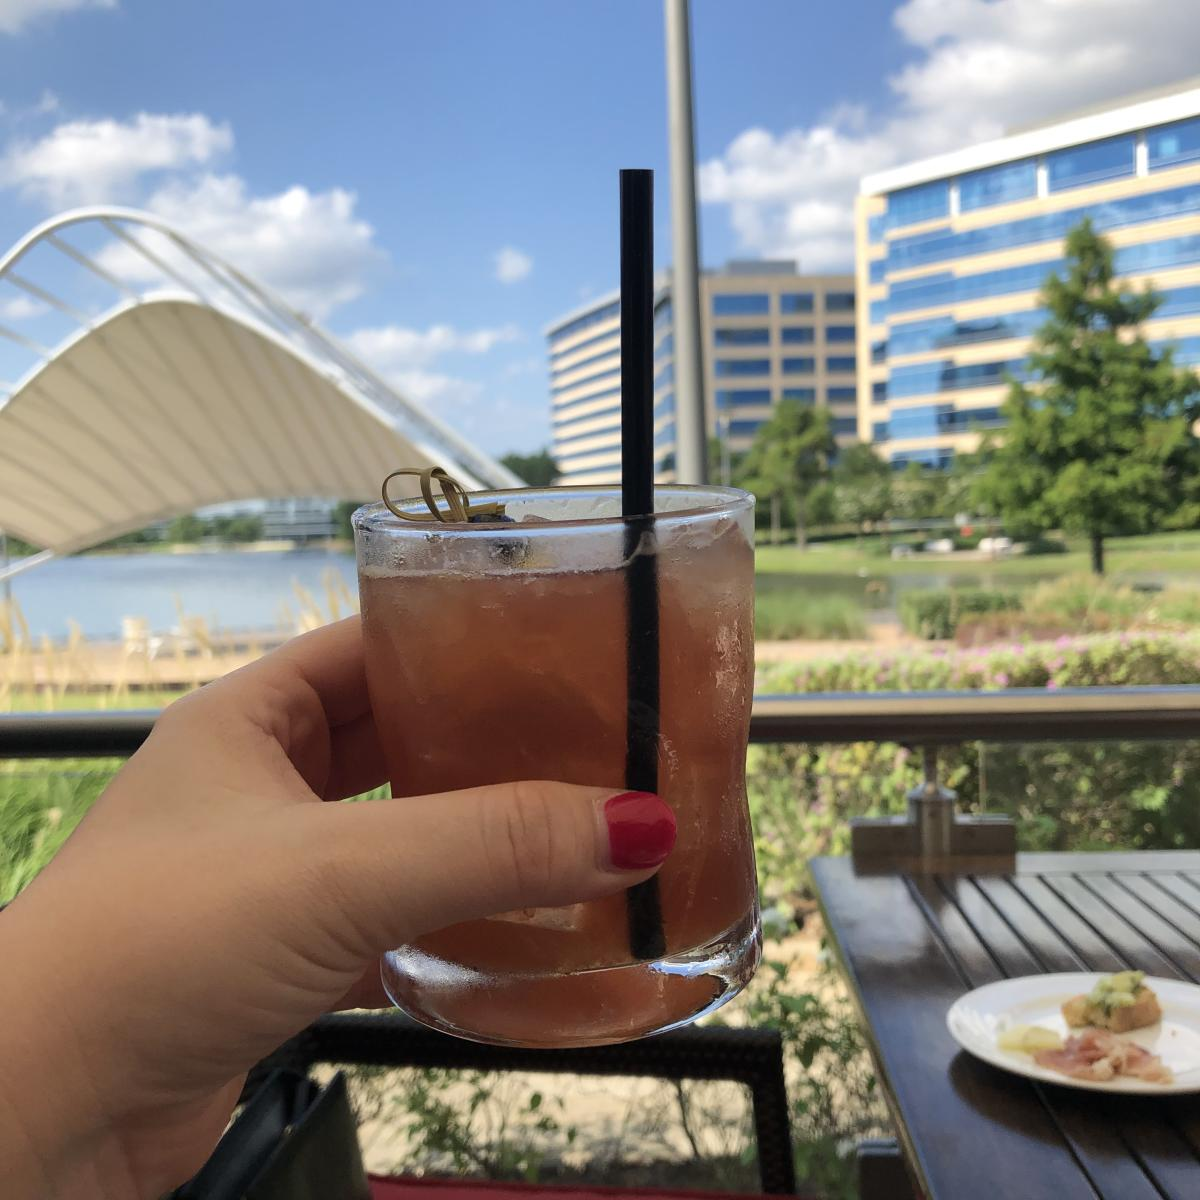 Cocktail from Fogo de Chao with view of Lake Woodlands